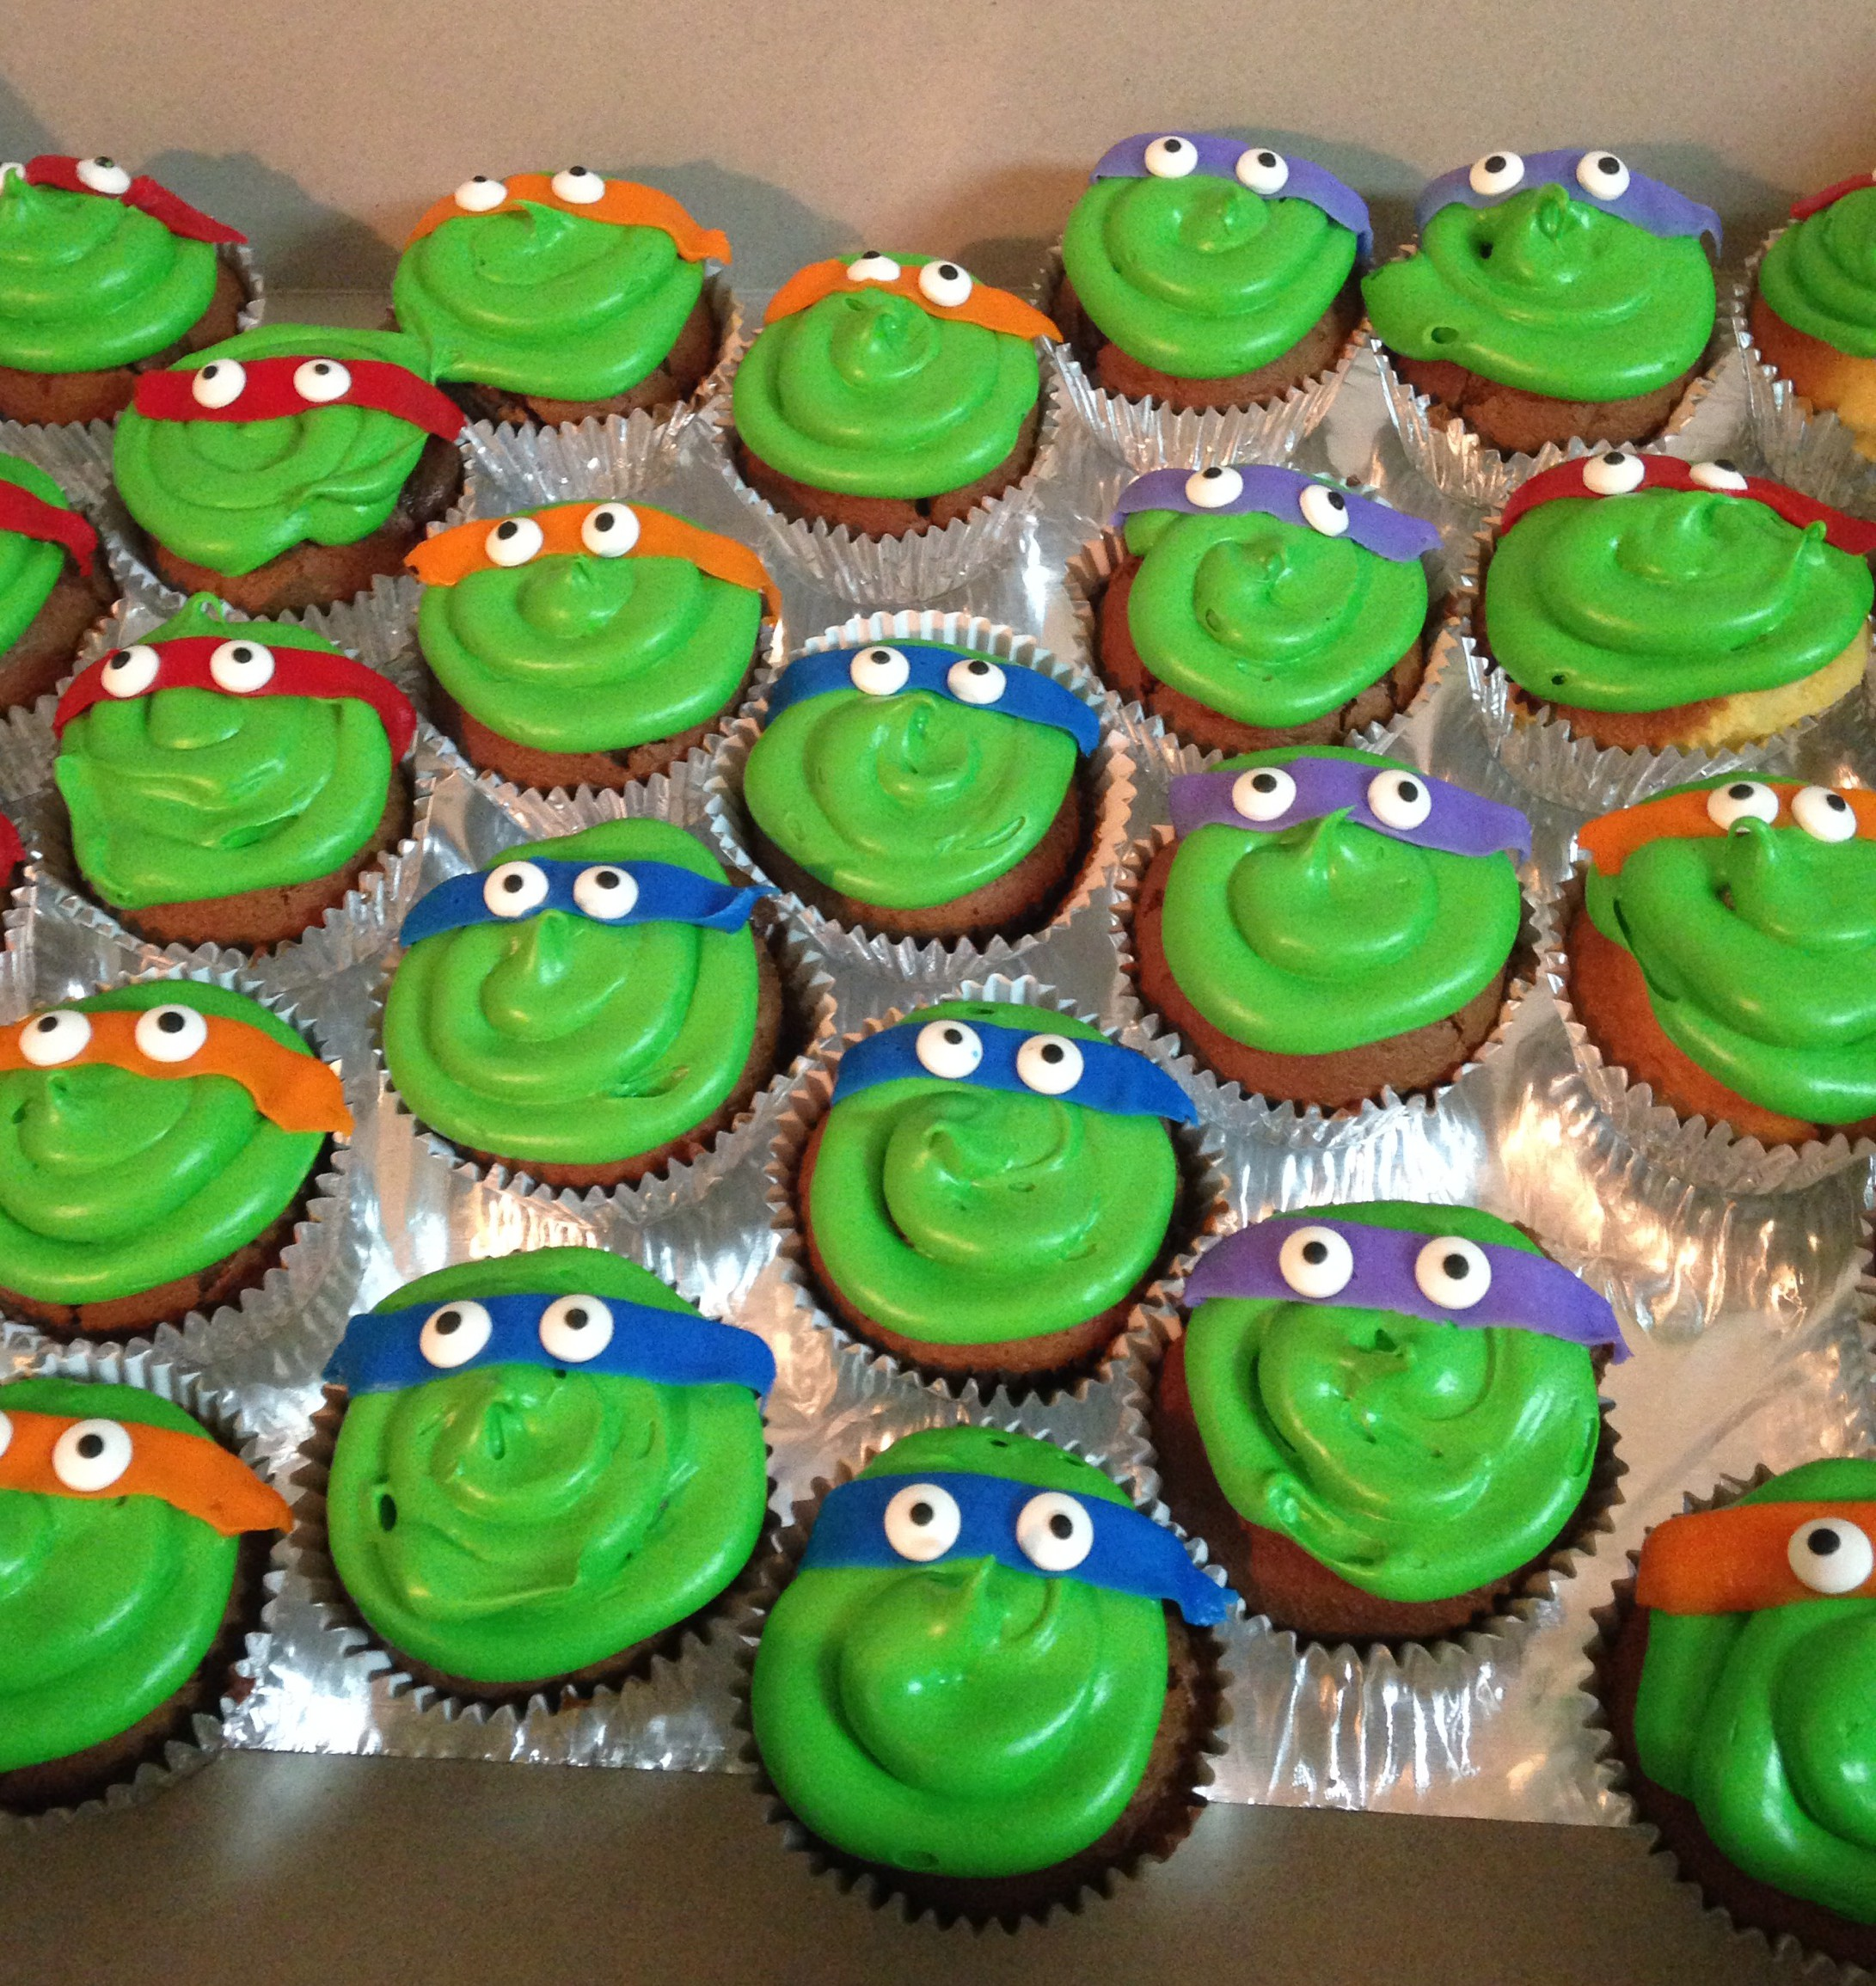 Best Of Ninja Turtles Cupcakestmnt Cupcakes Teenage Mutant Ninja